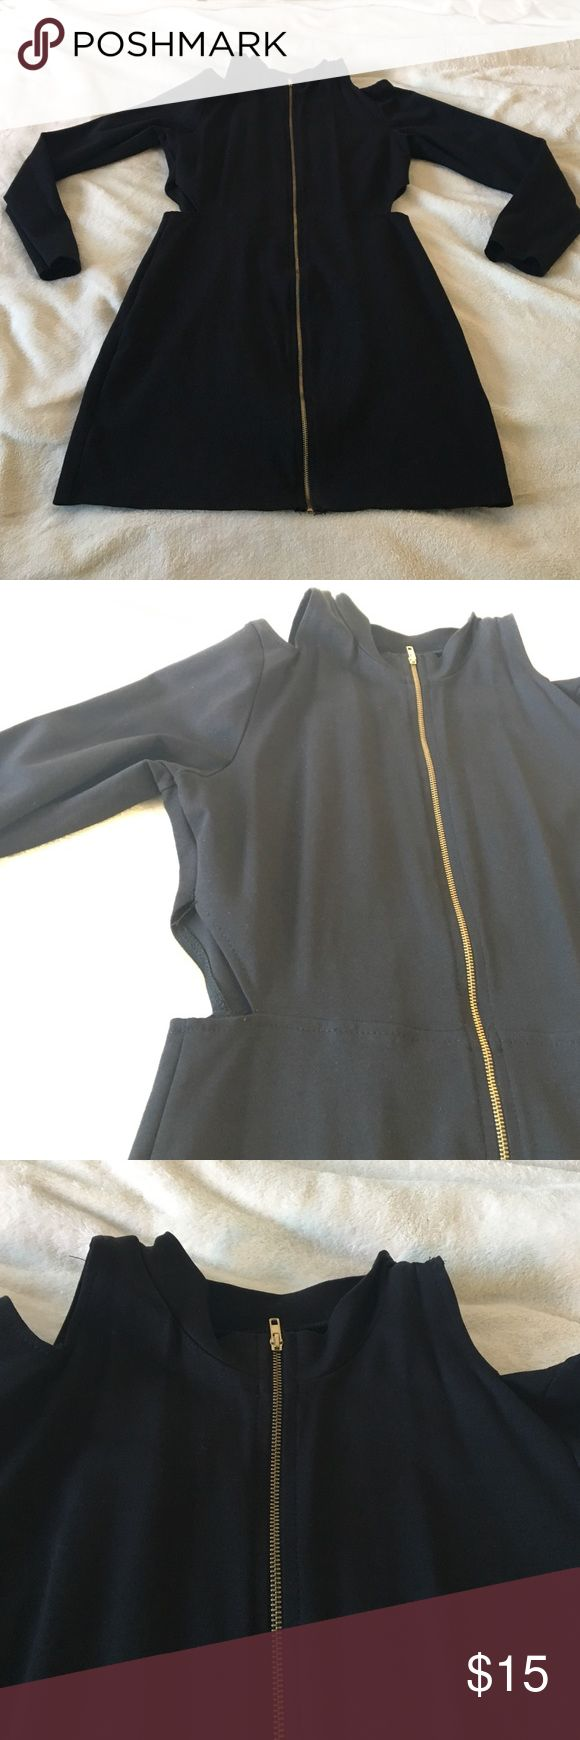 Long sleeve club dress Long sleeve club dress with cutouts on the sides. Thick fitted material. Dresses Mini